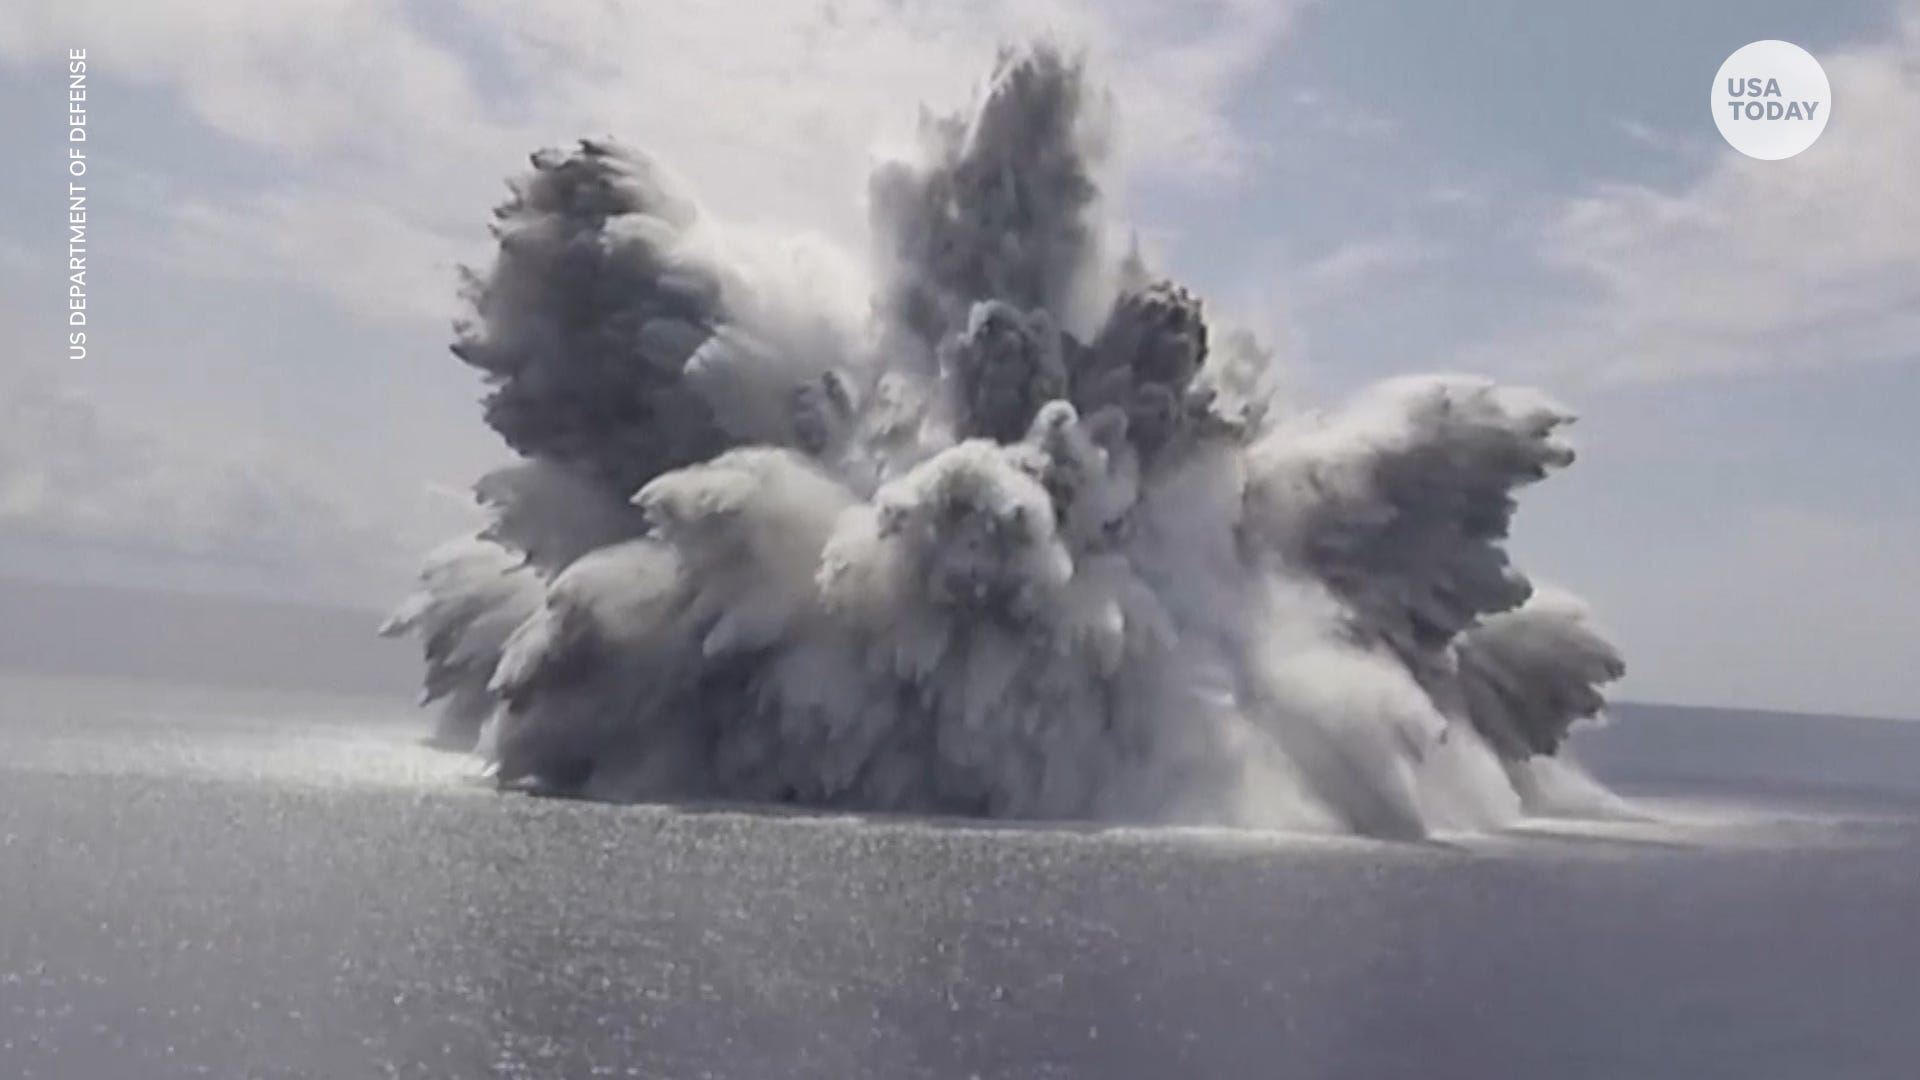 US Navy tests aircraft carrier with massive explosion off the coast of Florida